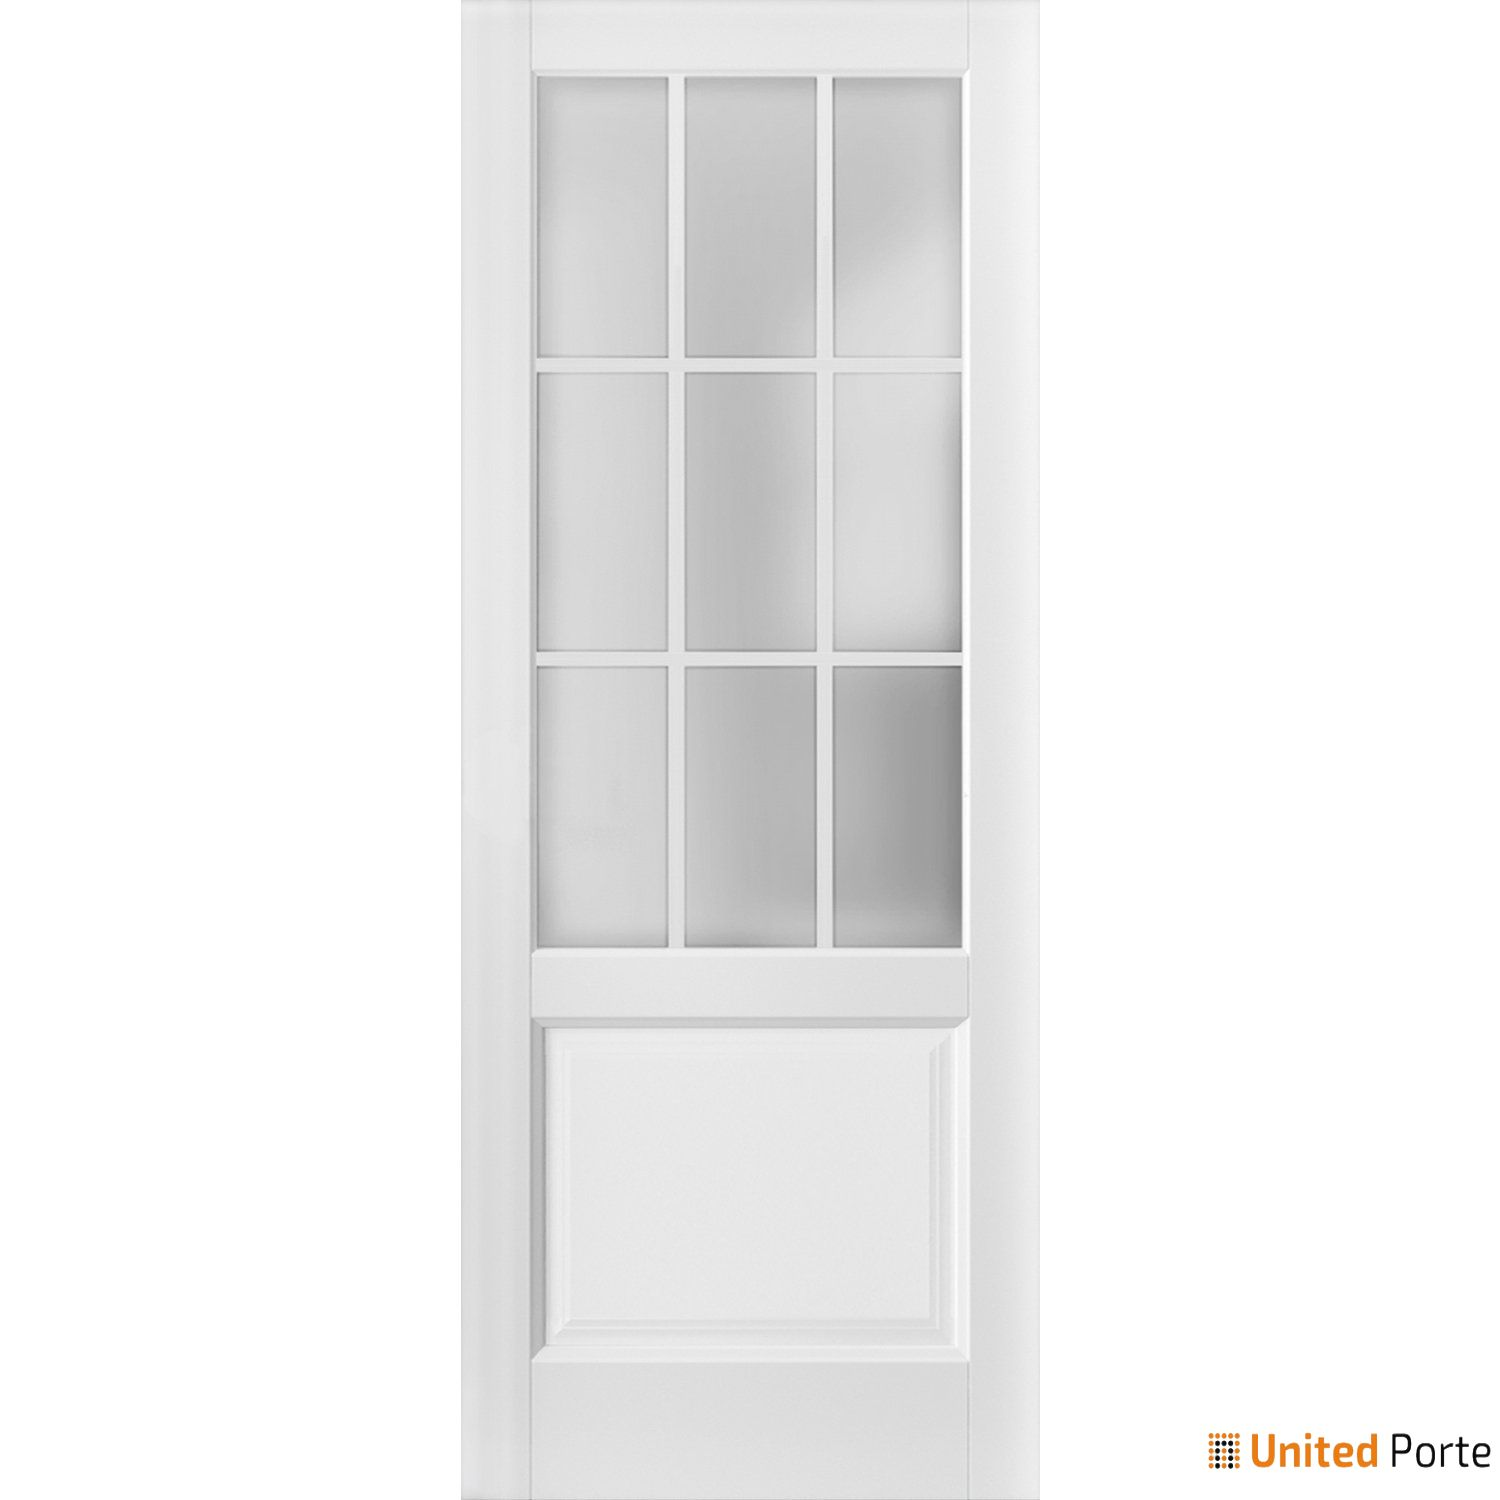 Felicia 3309 Matte White Sturdy Barn Door Frosted Glass 9 Lites Slab | Solid Panel Interior Barn Doors